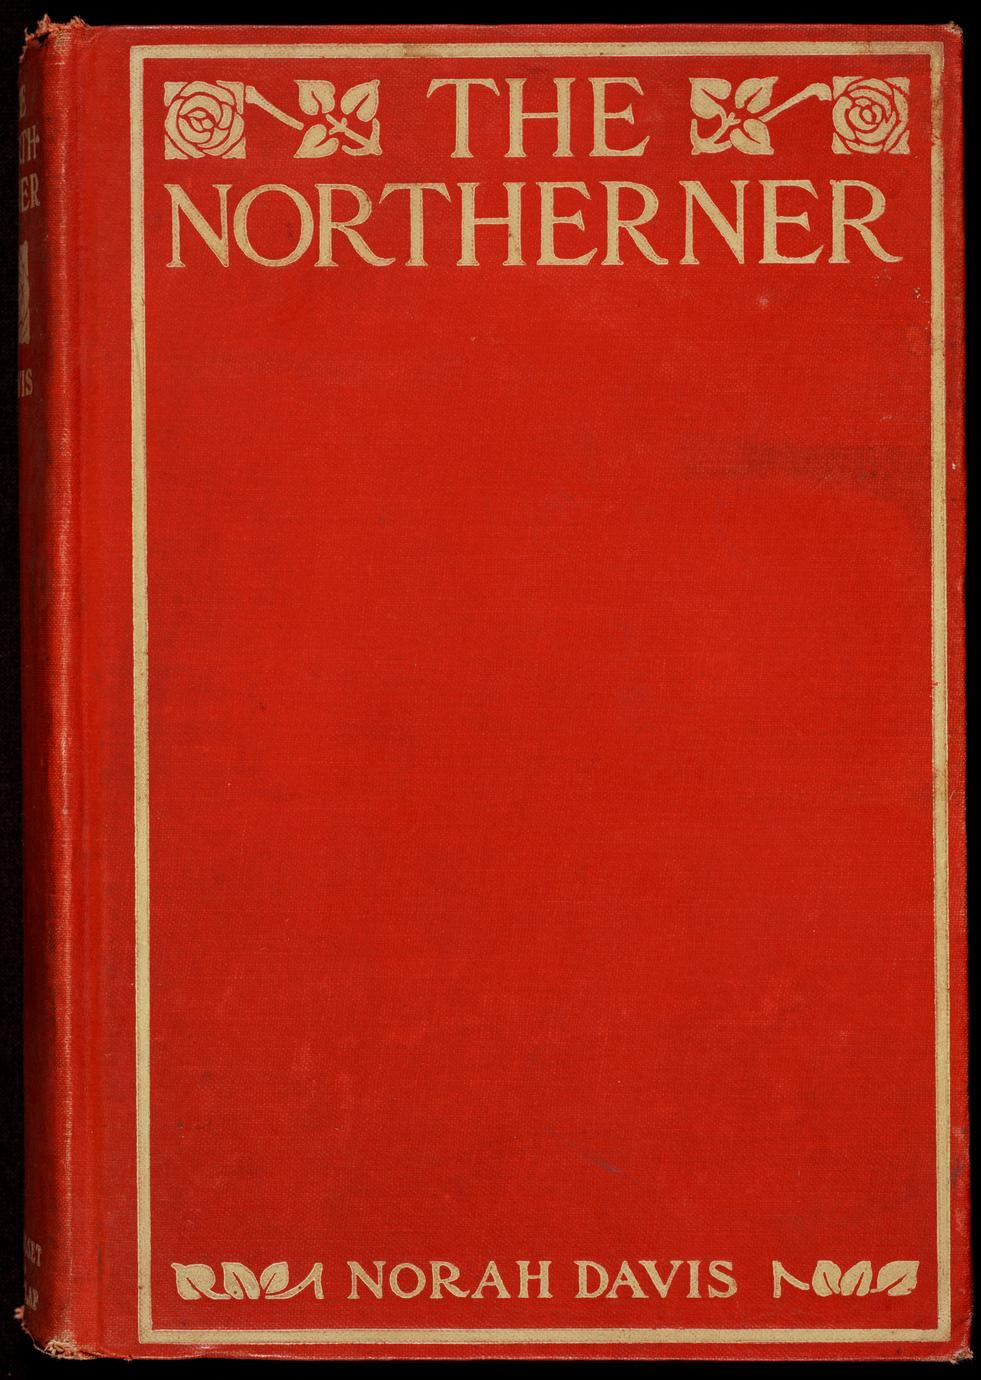 The northerner (1 of 2)